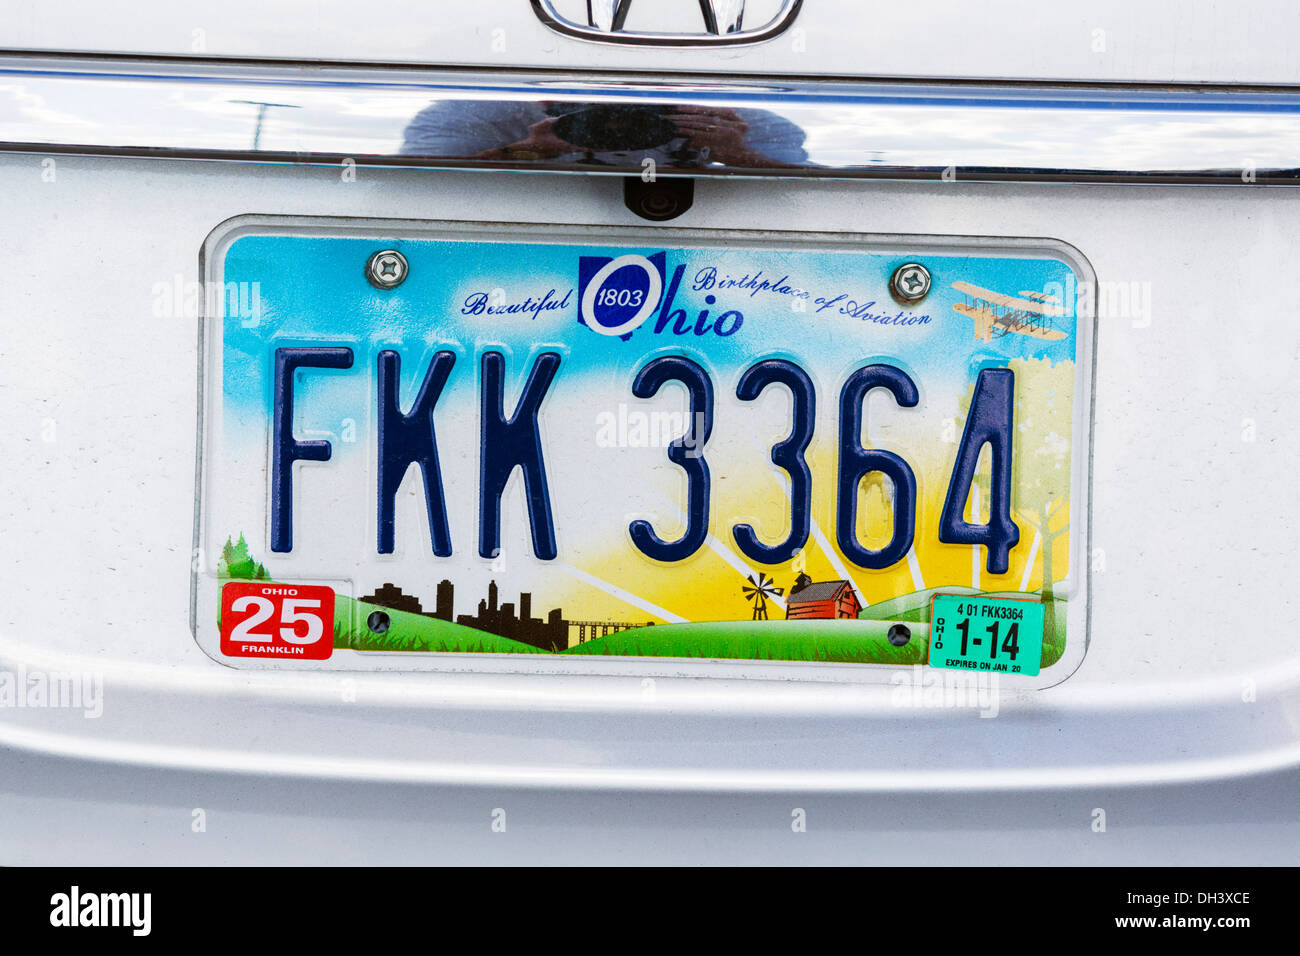 Ohio state license plate, USA - Stock Image